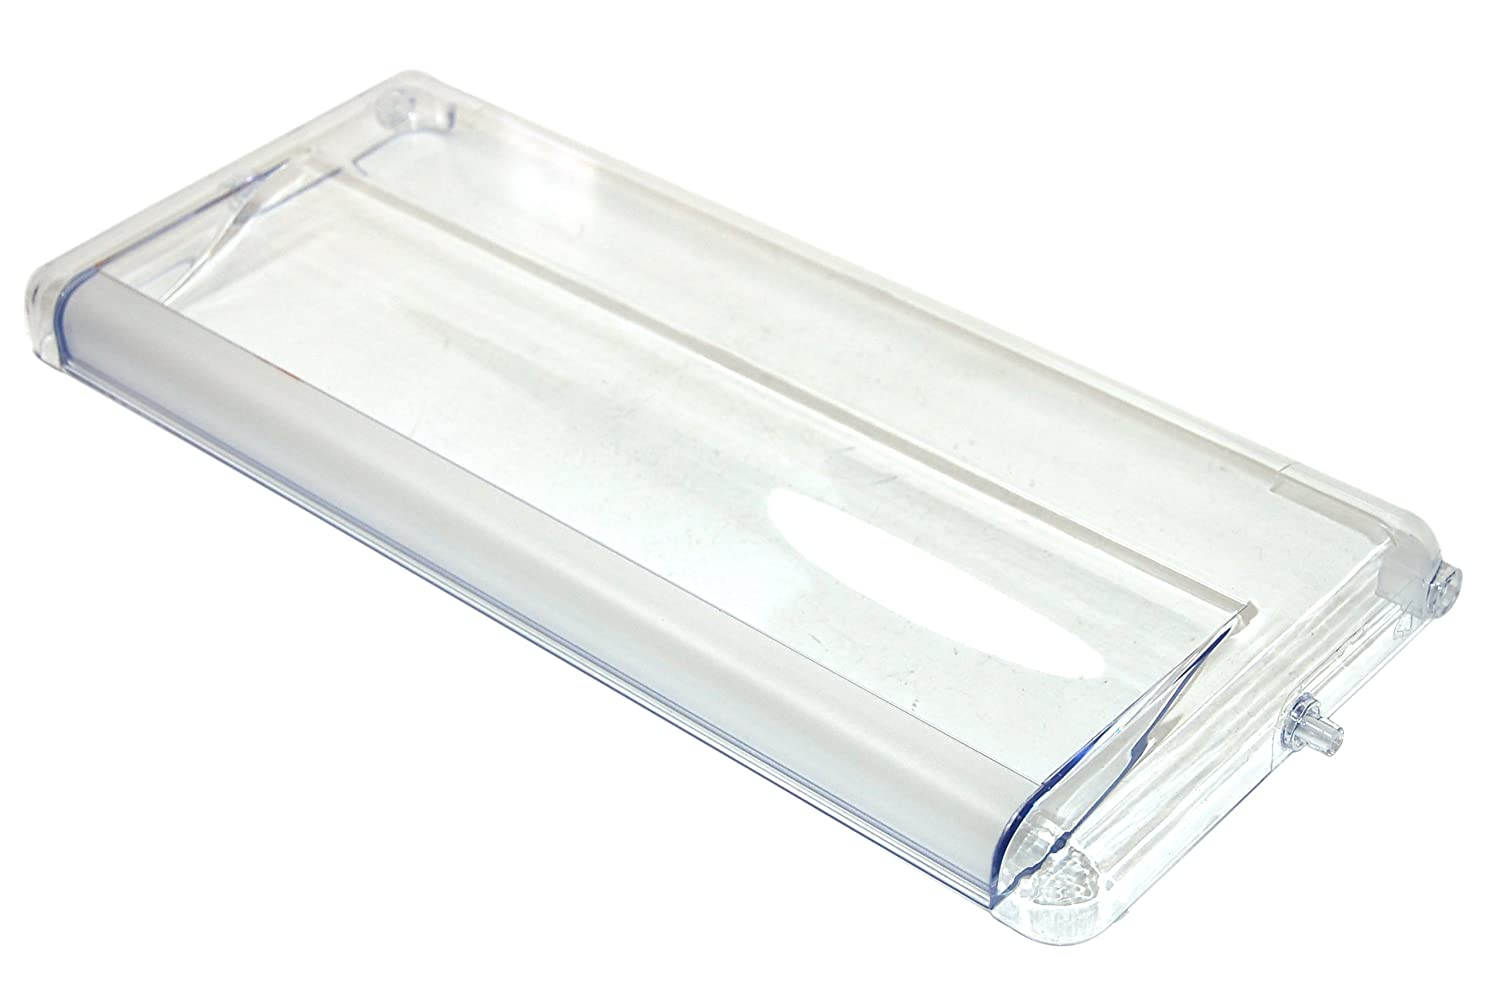 Whirlpool 481244069311 Gefriergeräte Accessories/Doors/Freezer Top Türklappe